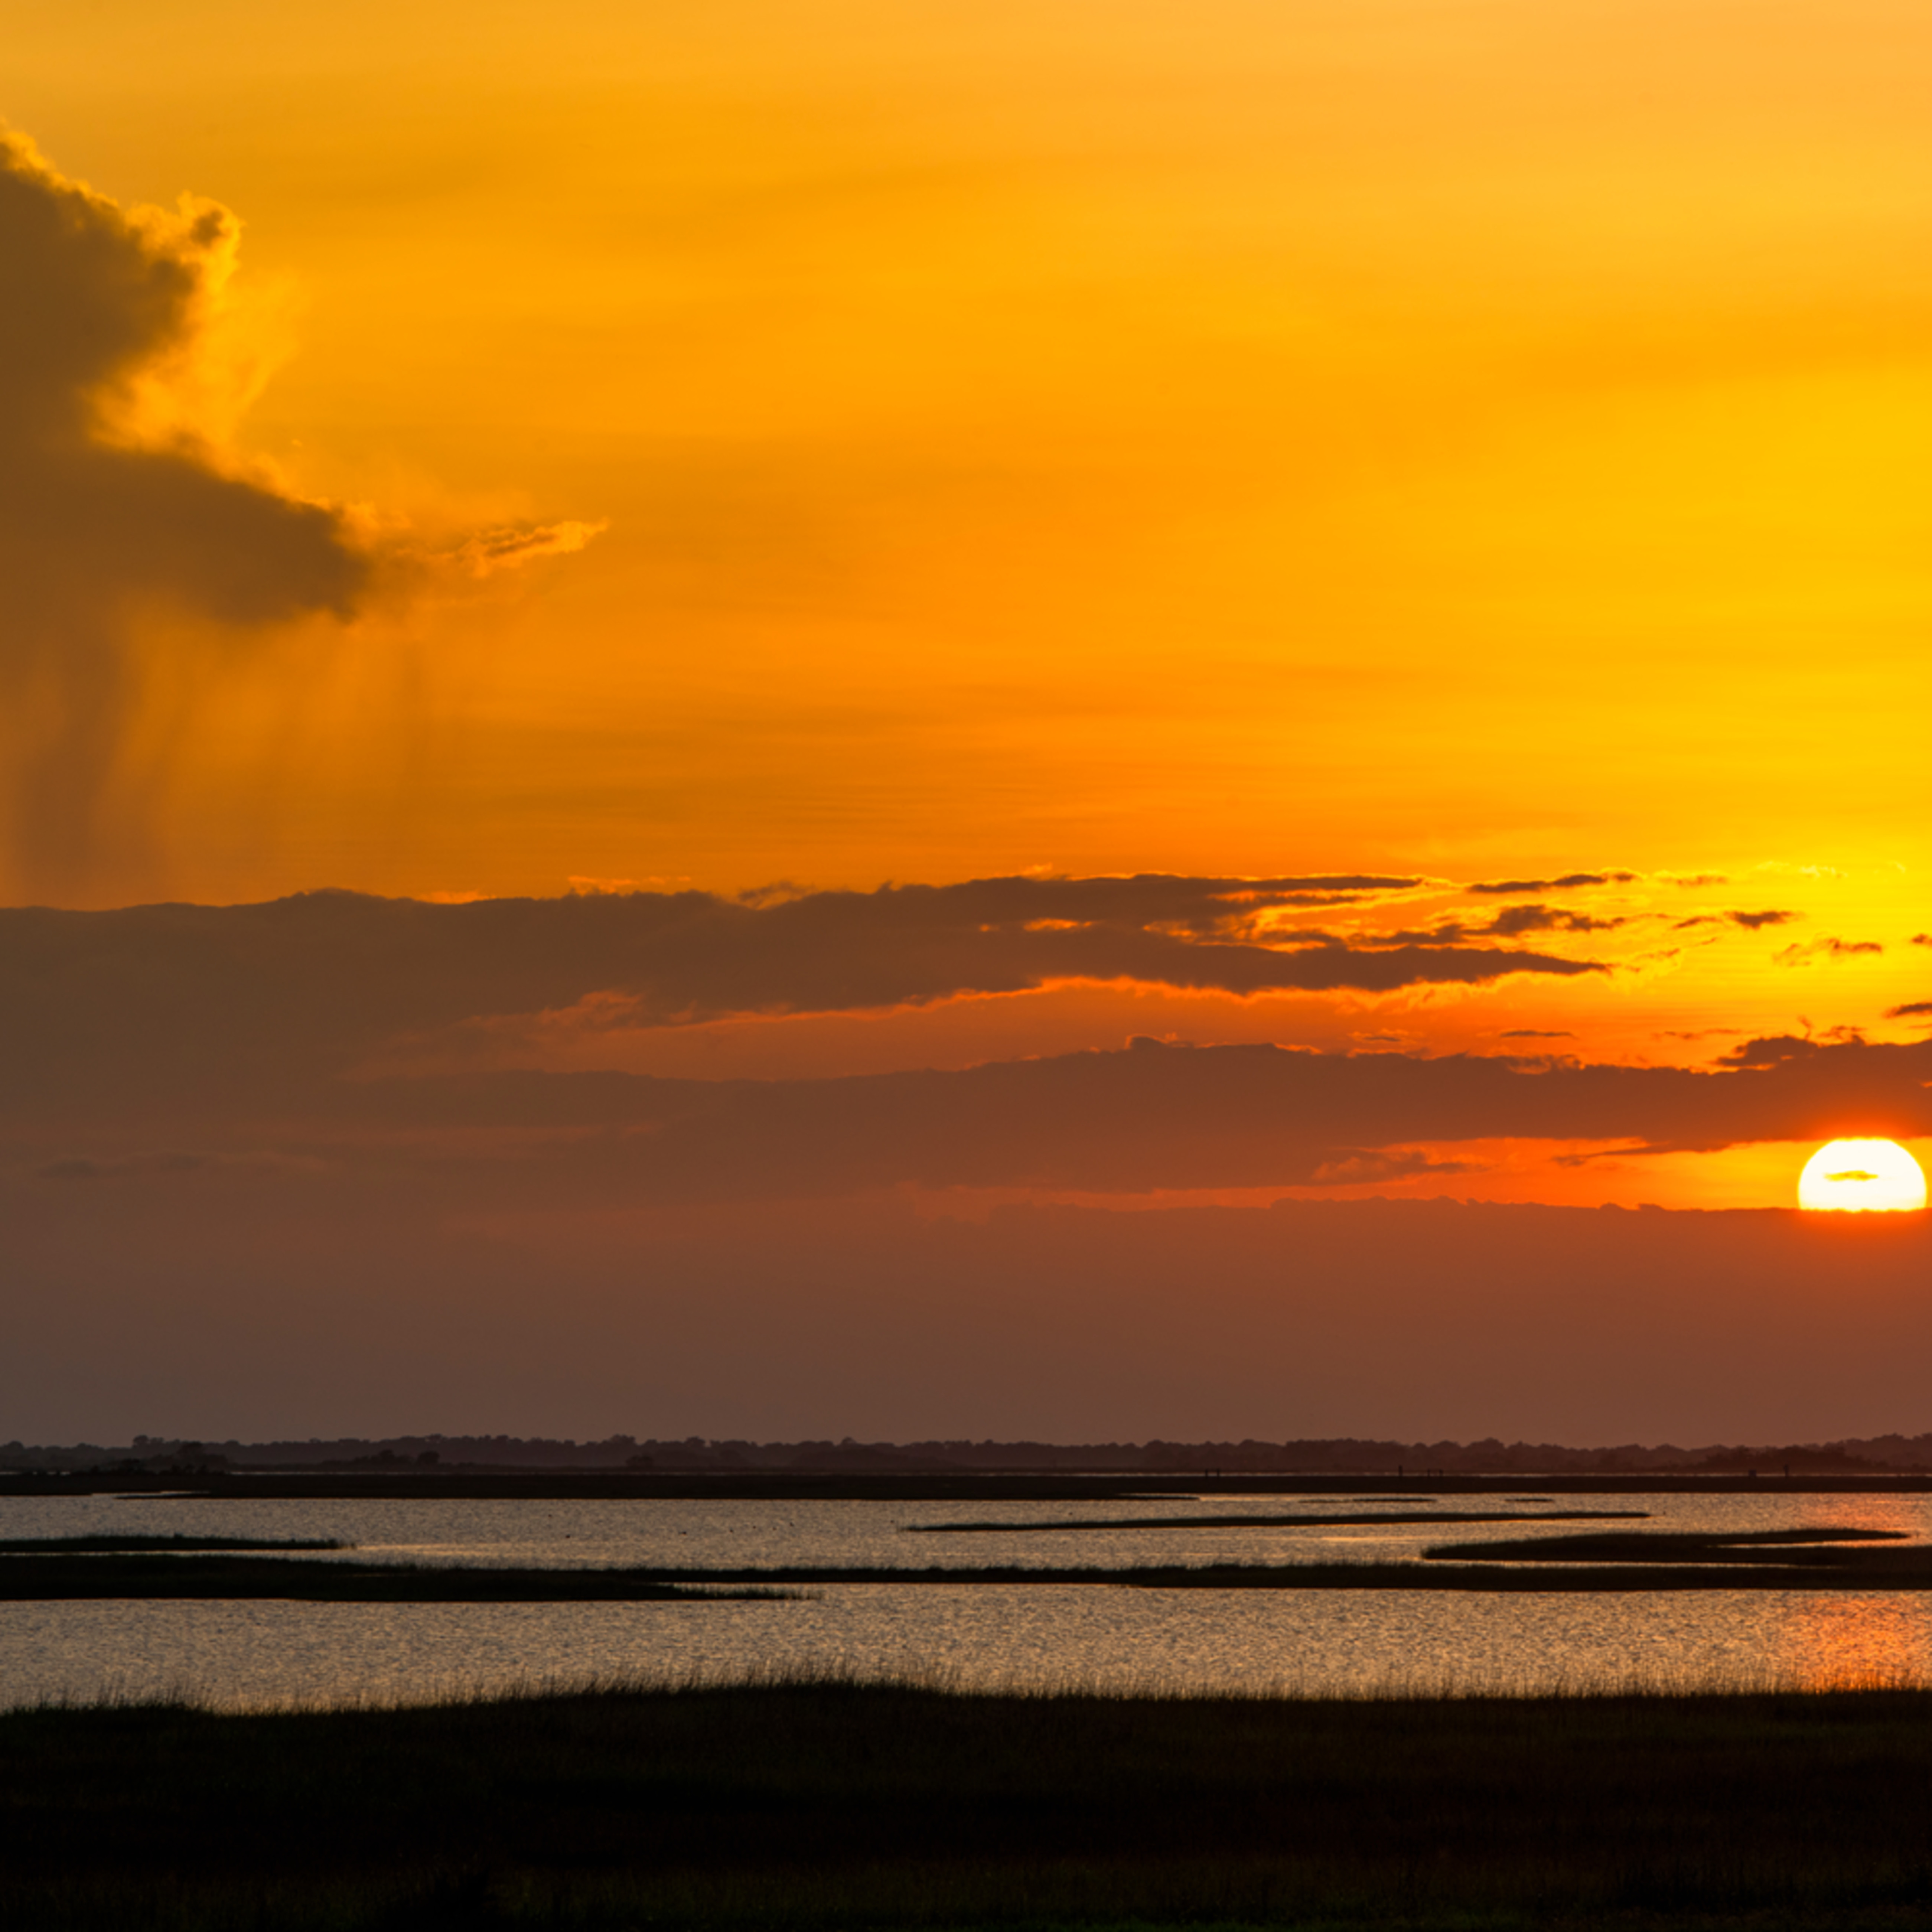 Andy crawford photography pointe aux chenes sunset 1 ar0vbm